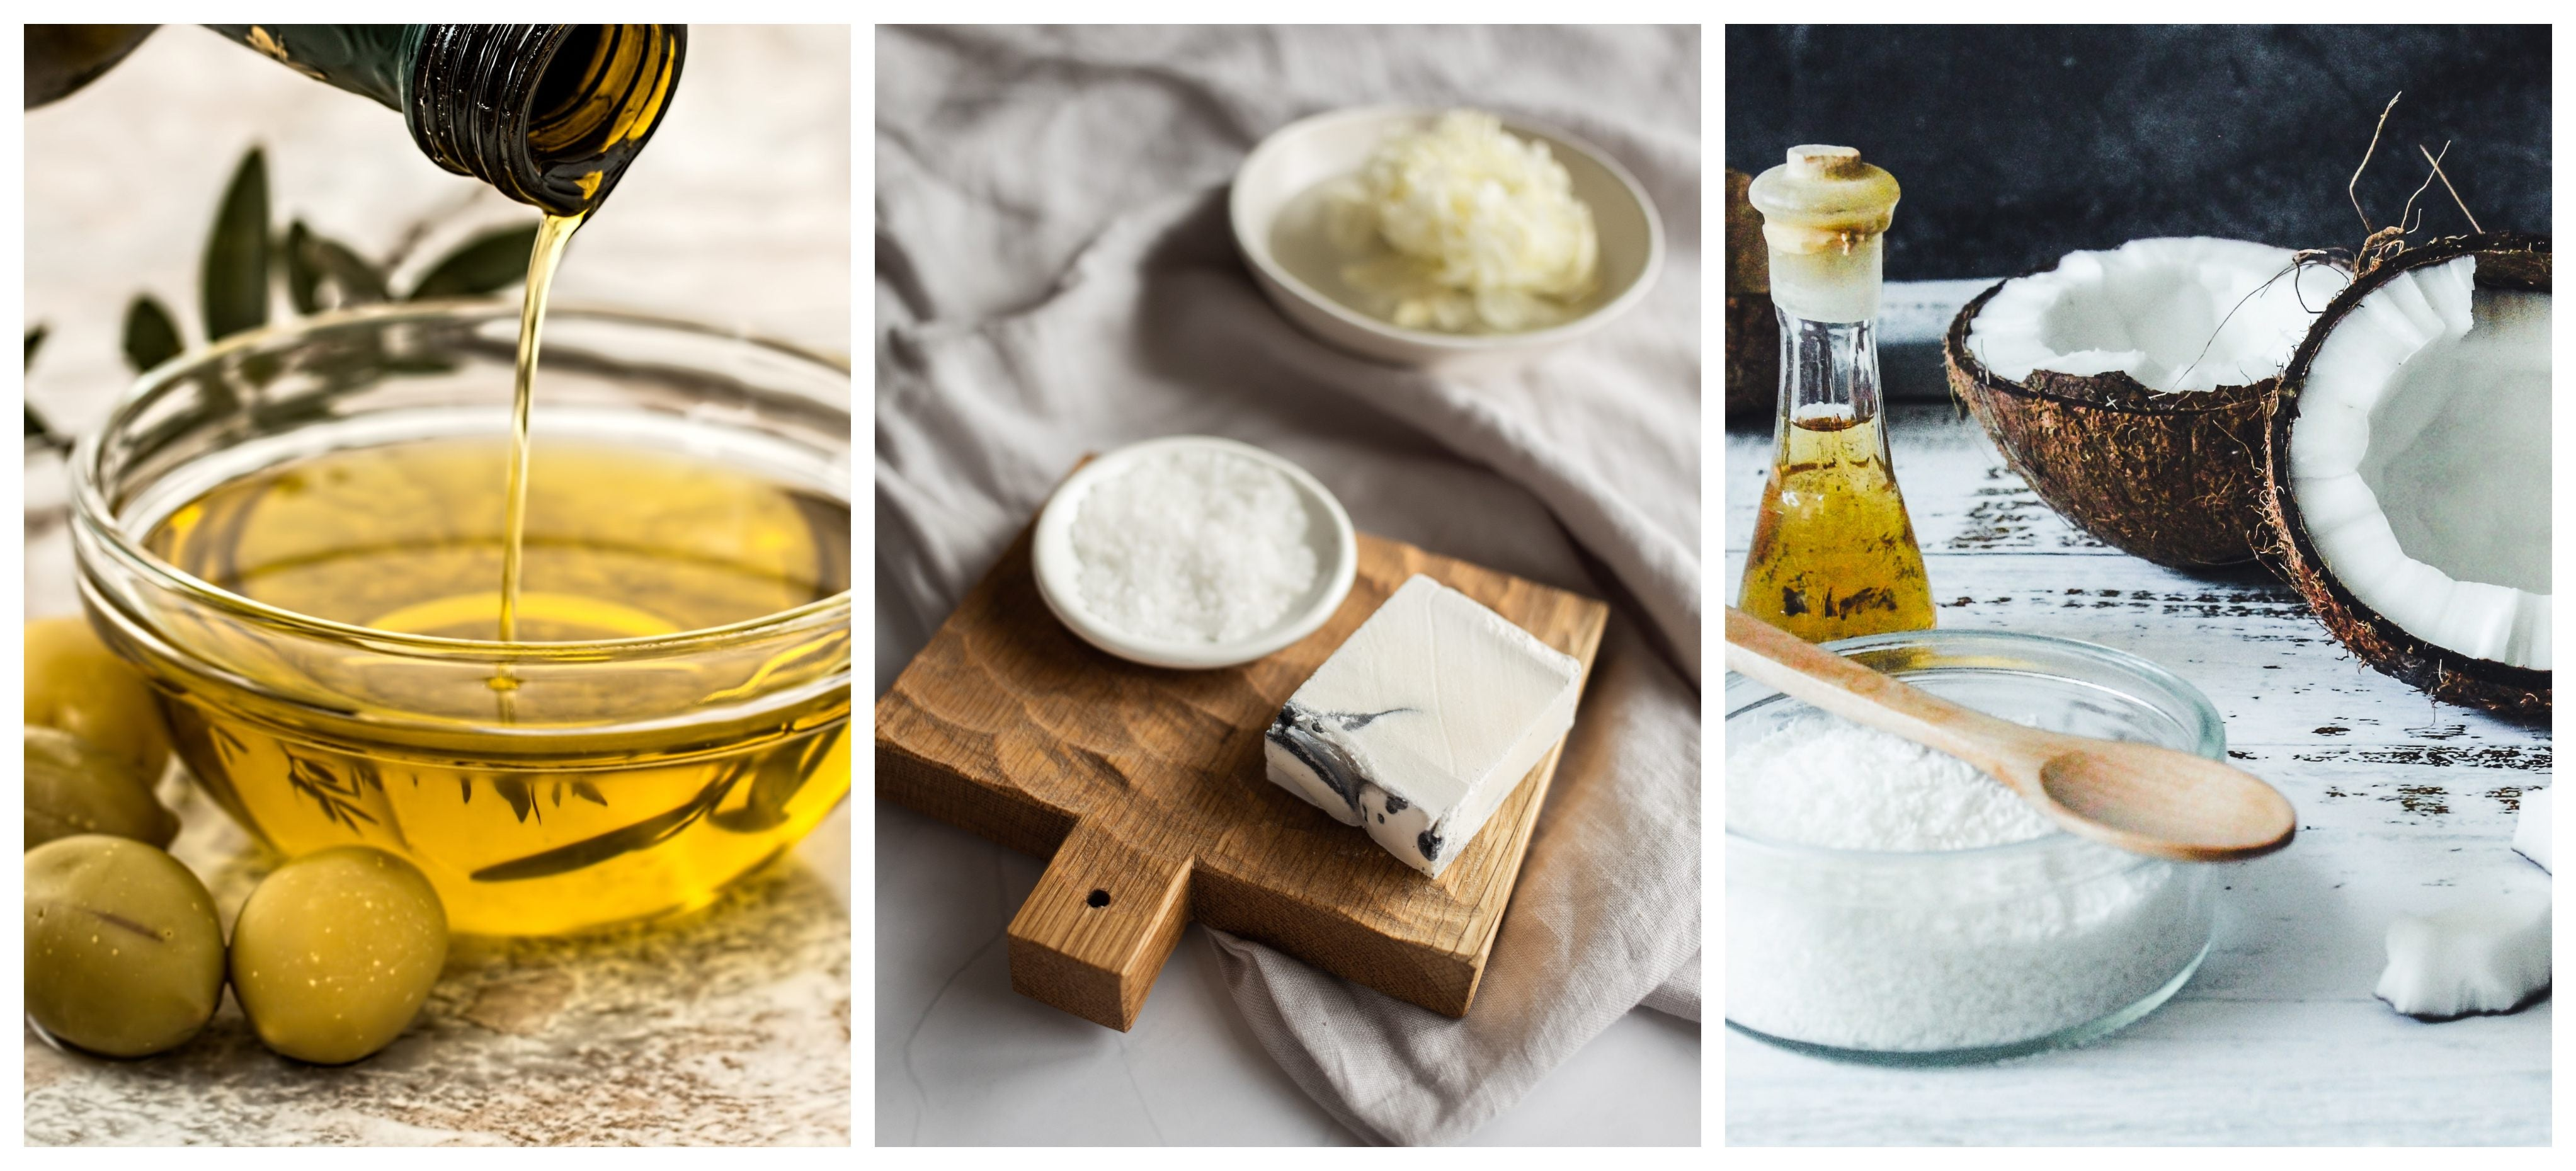 image collage of cocoa butter, coconut oil and olive oil